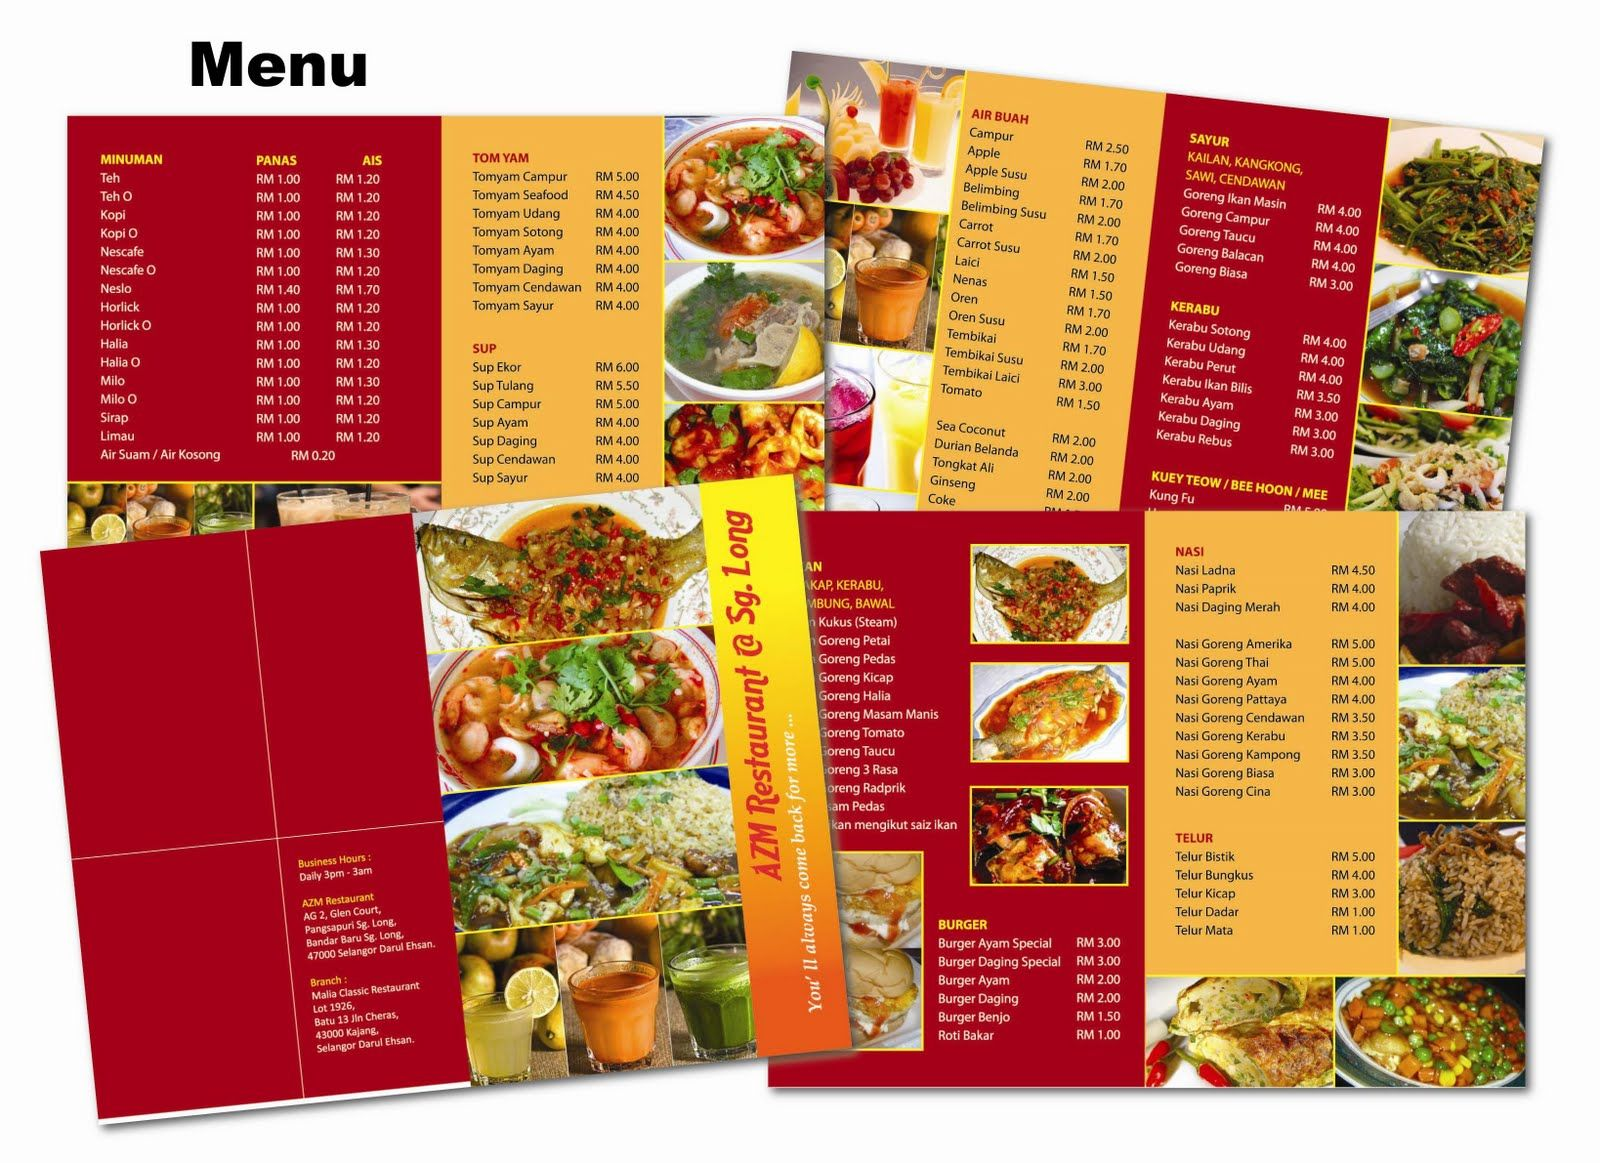 Restaurant Menu Design Ideas 30 elegant cafe and restaurant menu designs part 3 multy shades Menu Design Inspiration Designs For Restaurants Bank Gift Cards